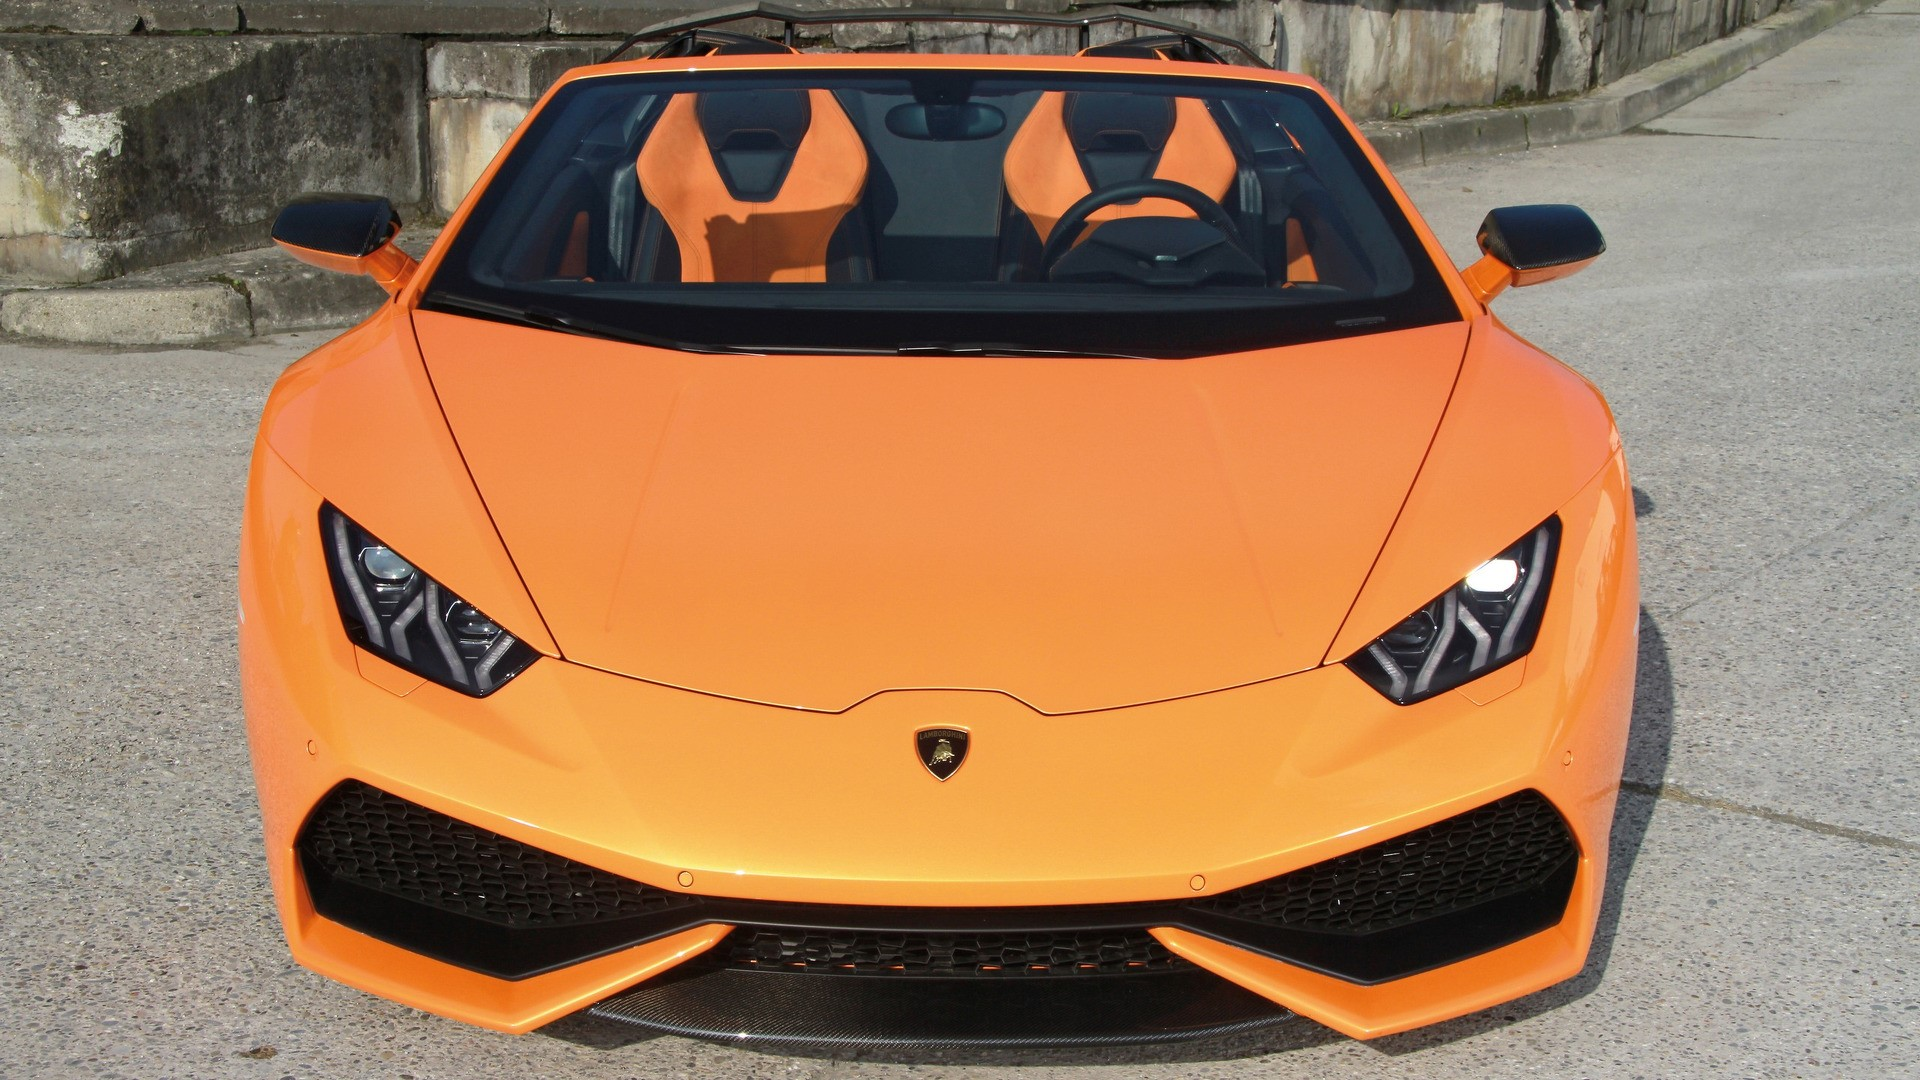 Lamborghini Huracan Spyder by Vision of Speed (2)